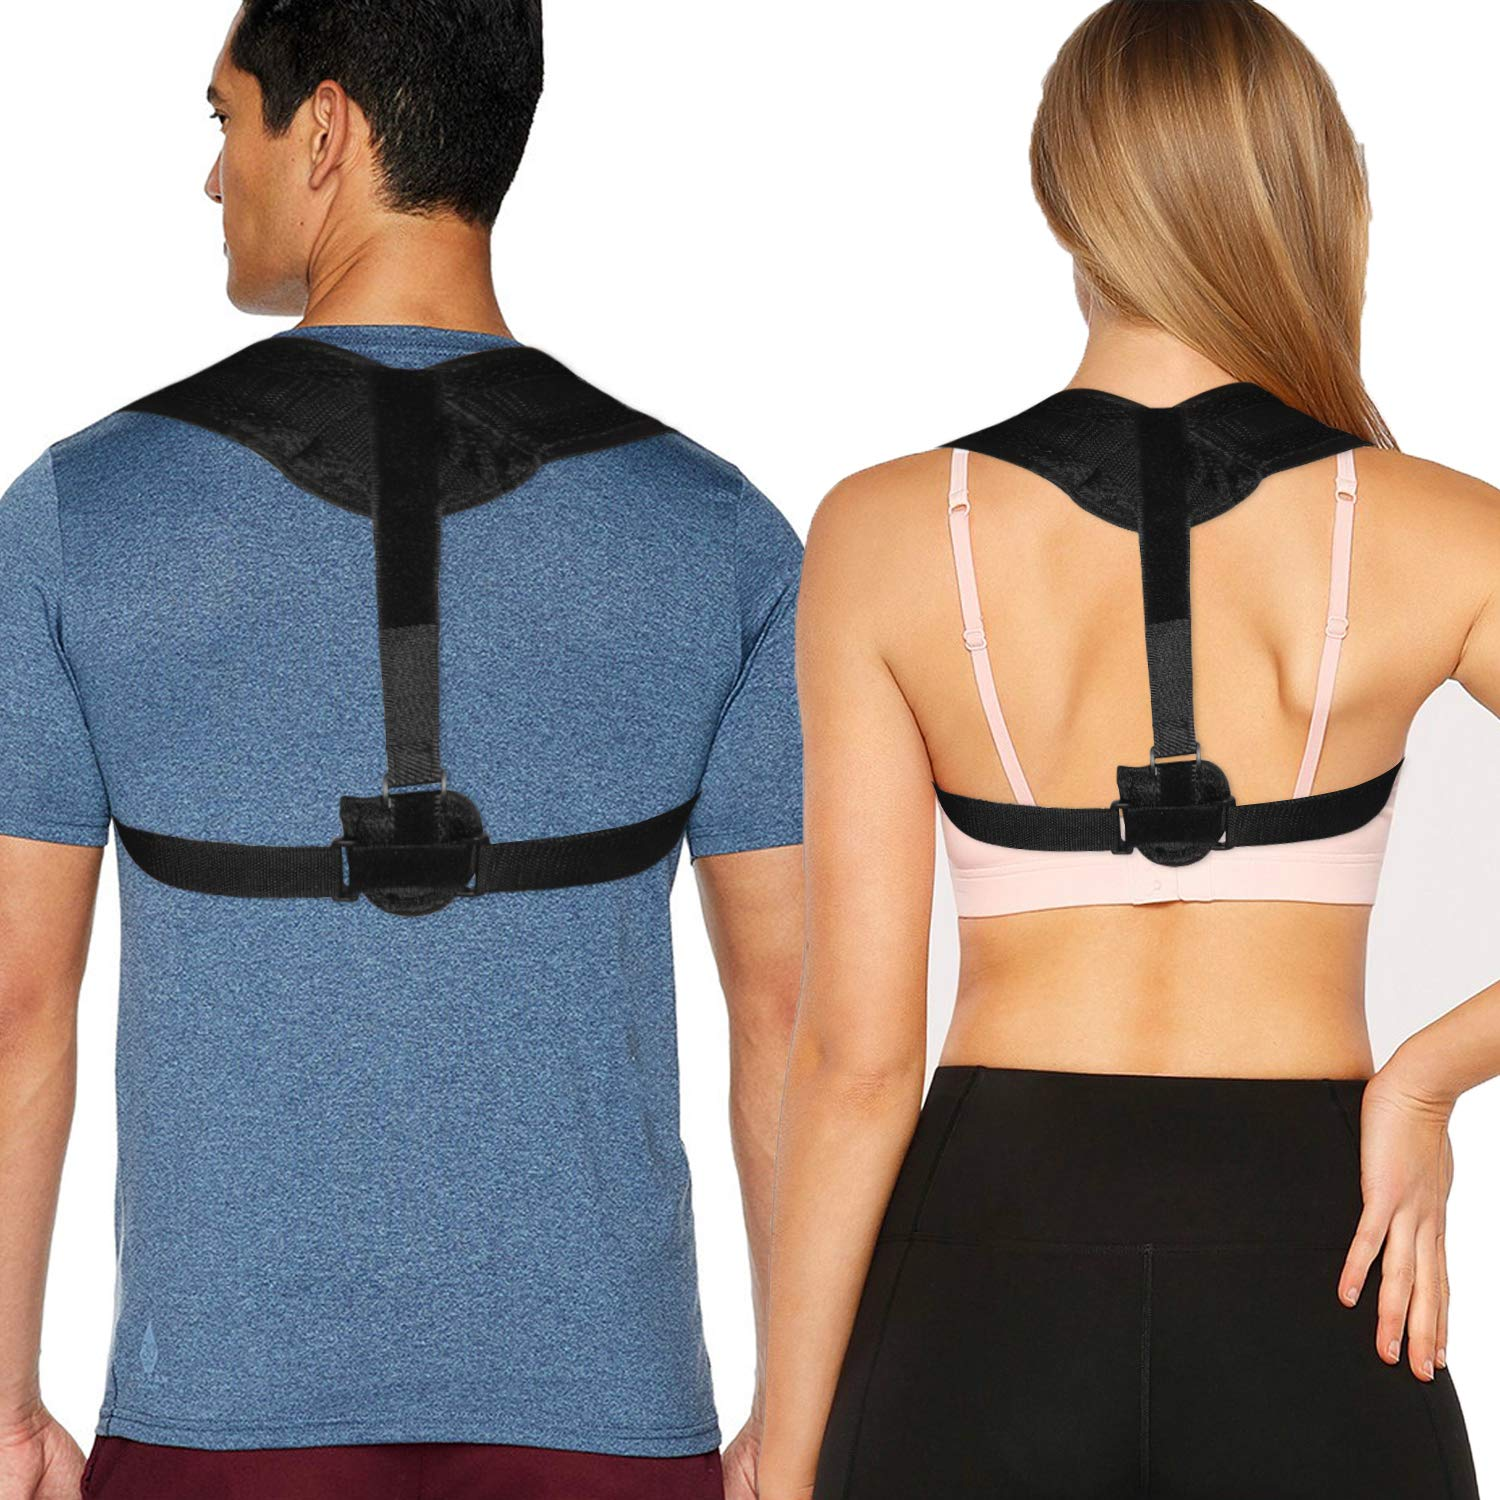 Back Posture Corrector for Women and Men - Upper Back Brace and Straightener - Back Brace Posture Corrector for Upright Posture Support